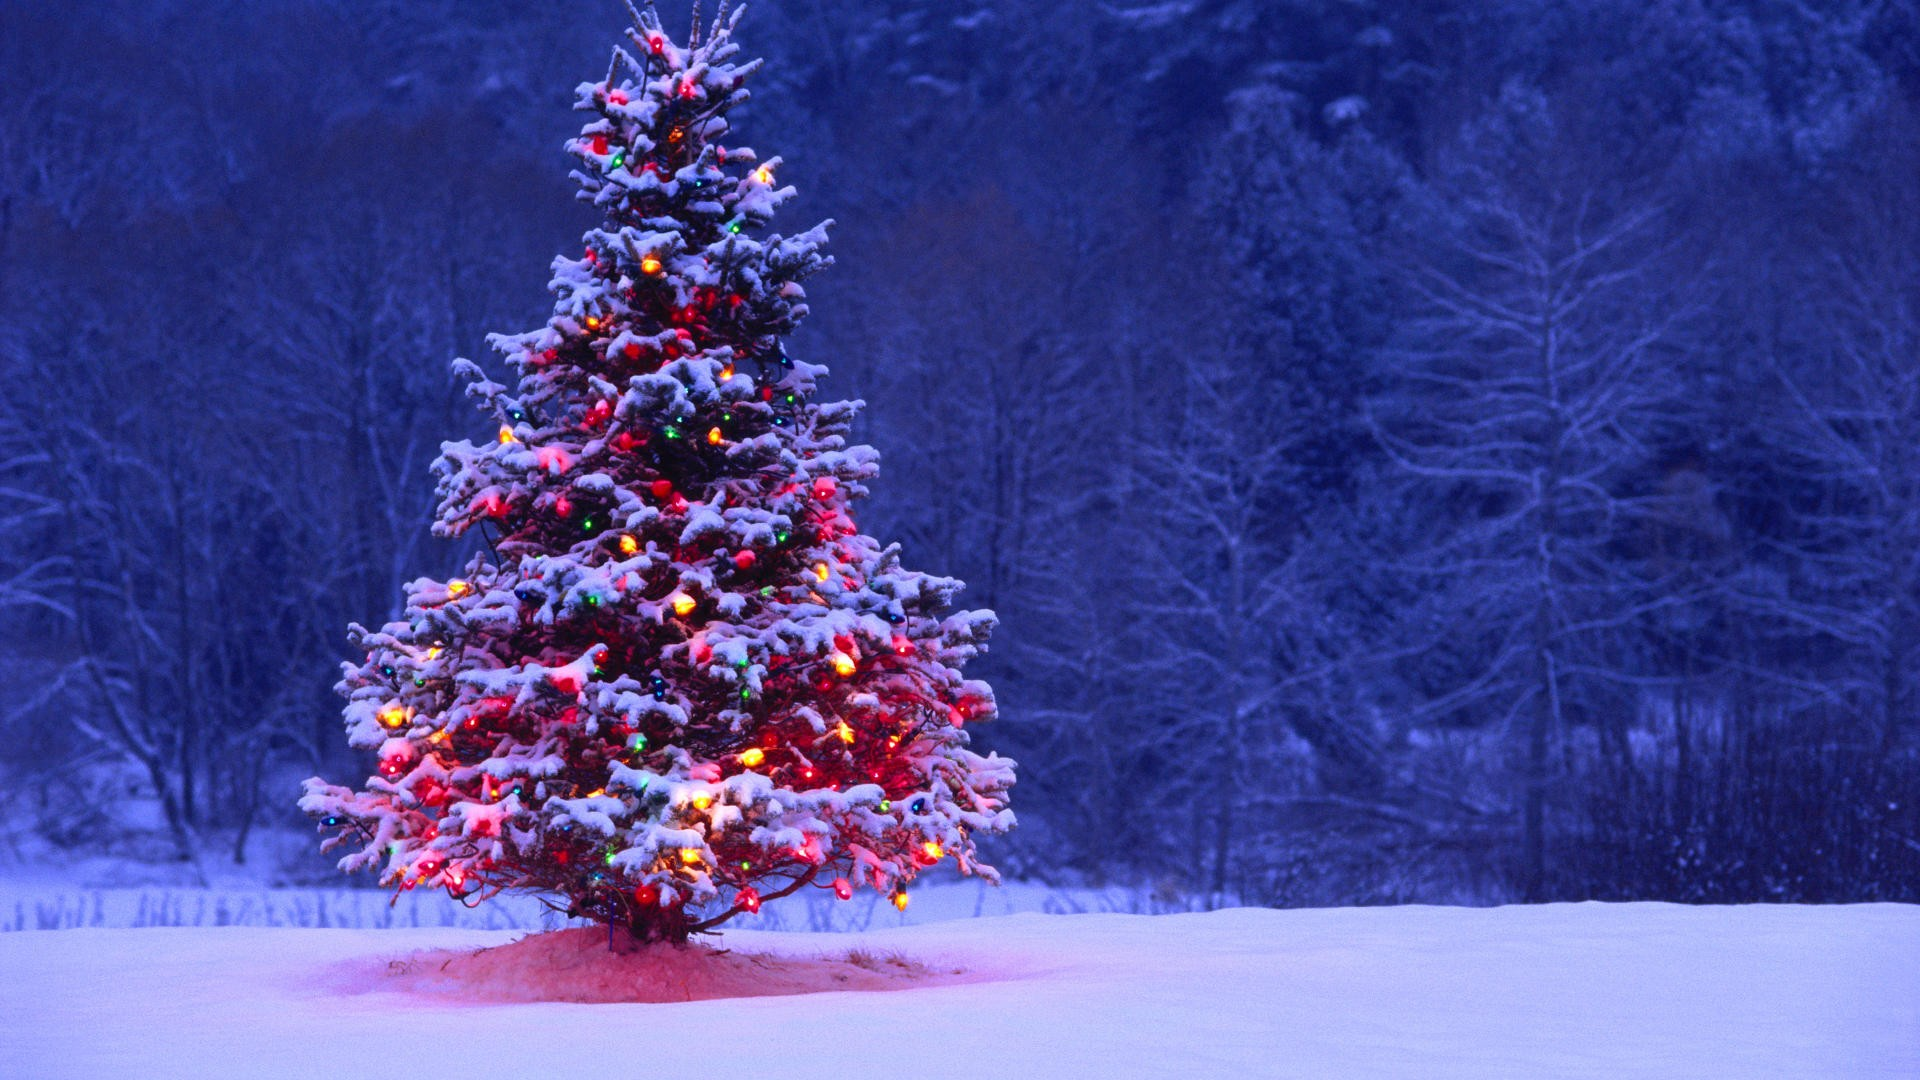 Light Covered Snowy Christmas Tree